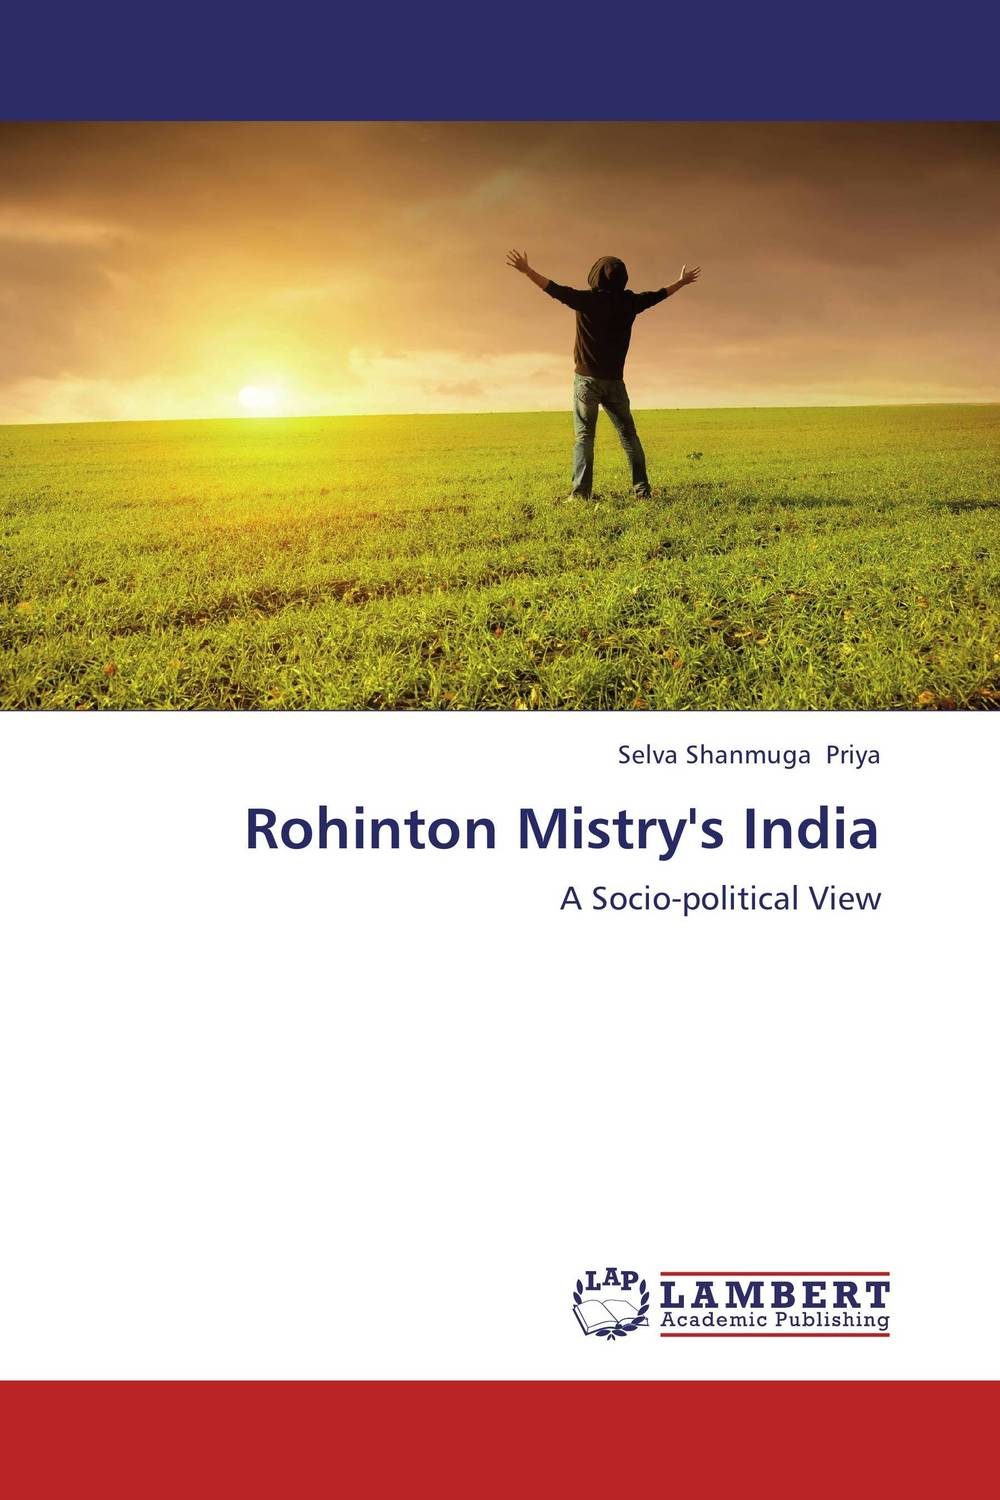 Rohinton Mistry's India family matters – secrecy